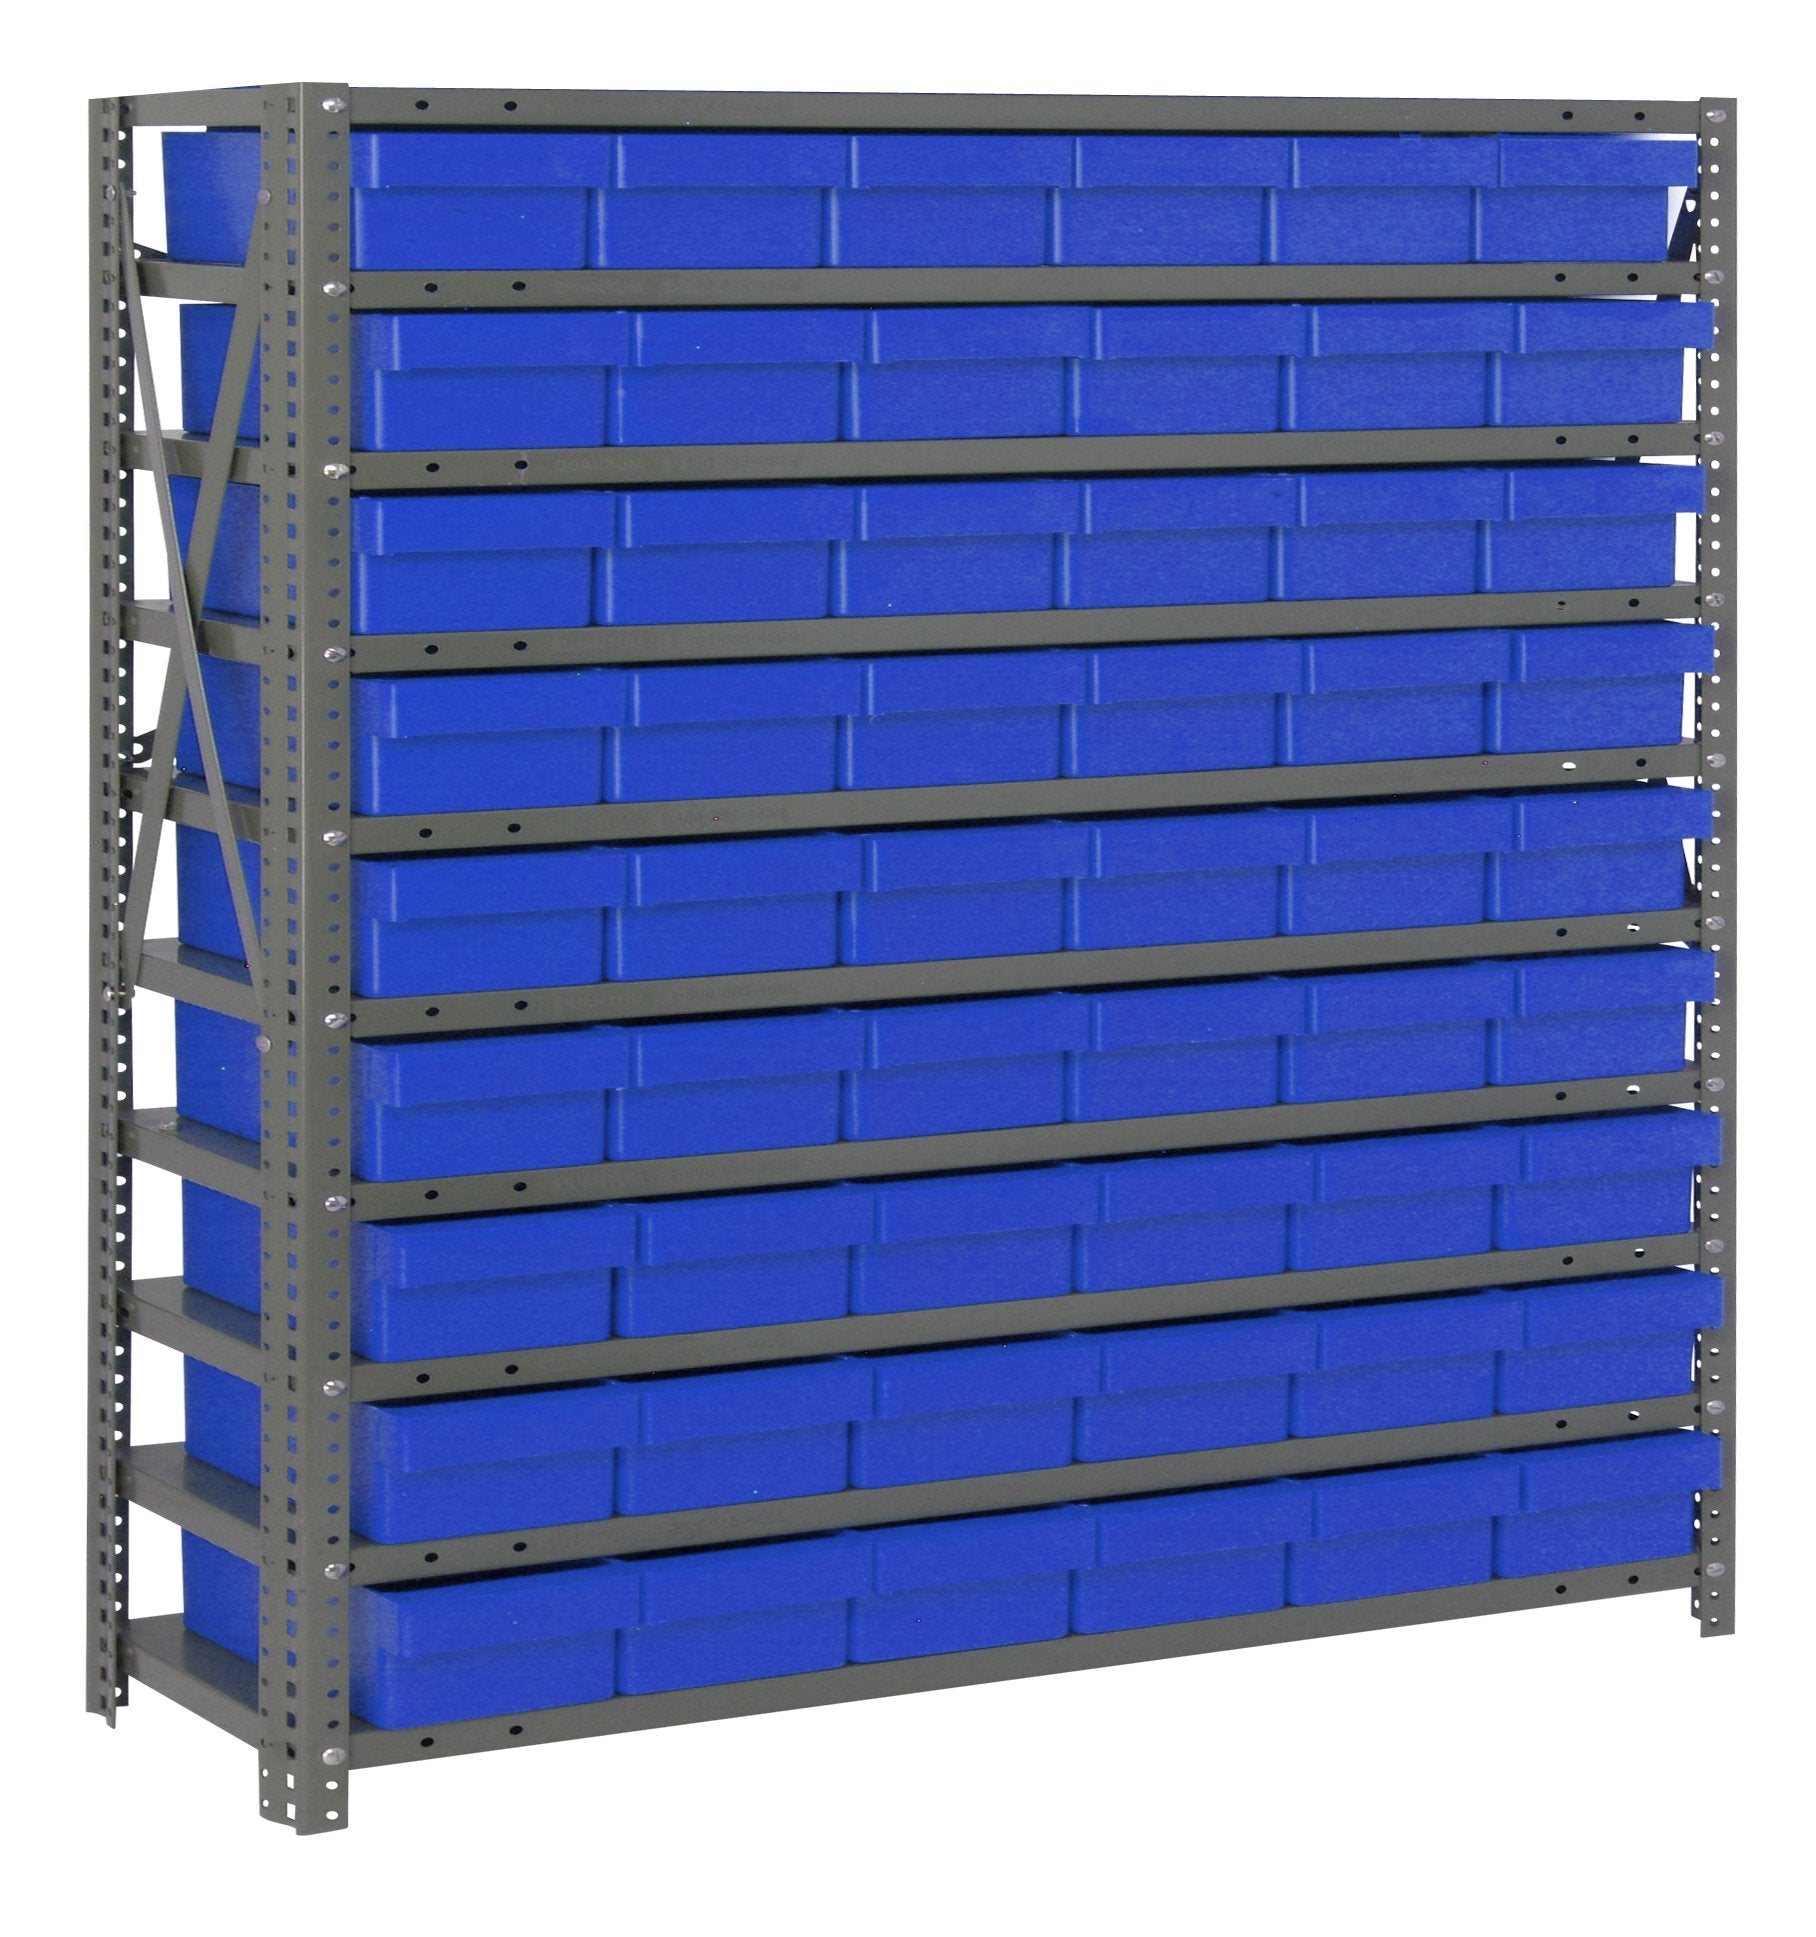 "SUPER TUFF EURO DRAWER STEEL SHELVING SYSTEMS - 12"" x 36"" x 39"""